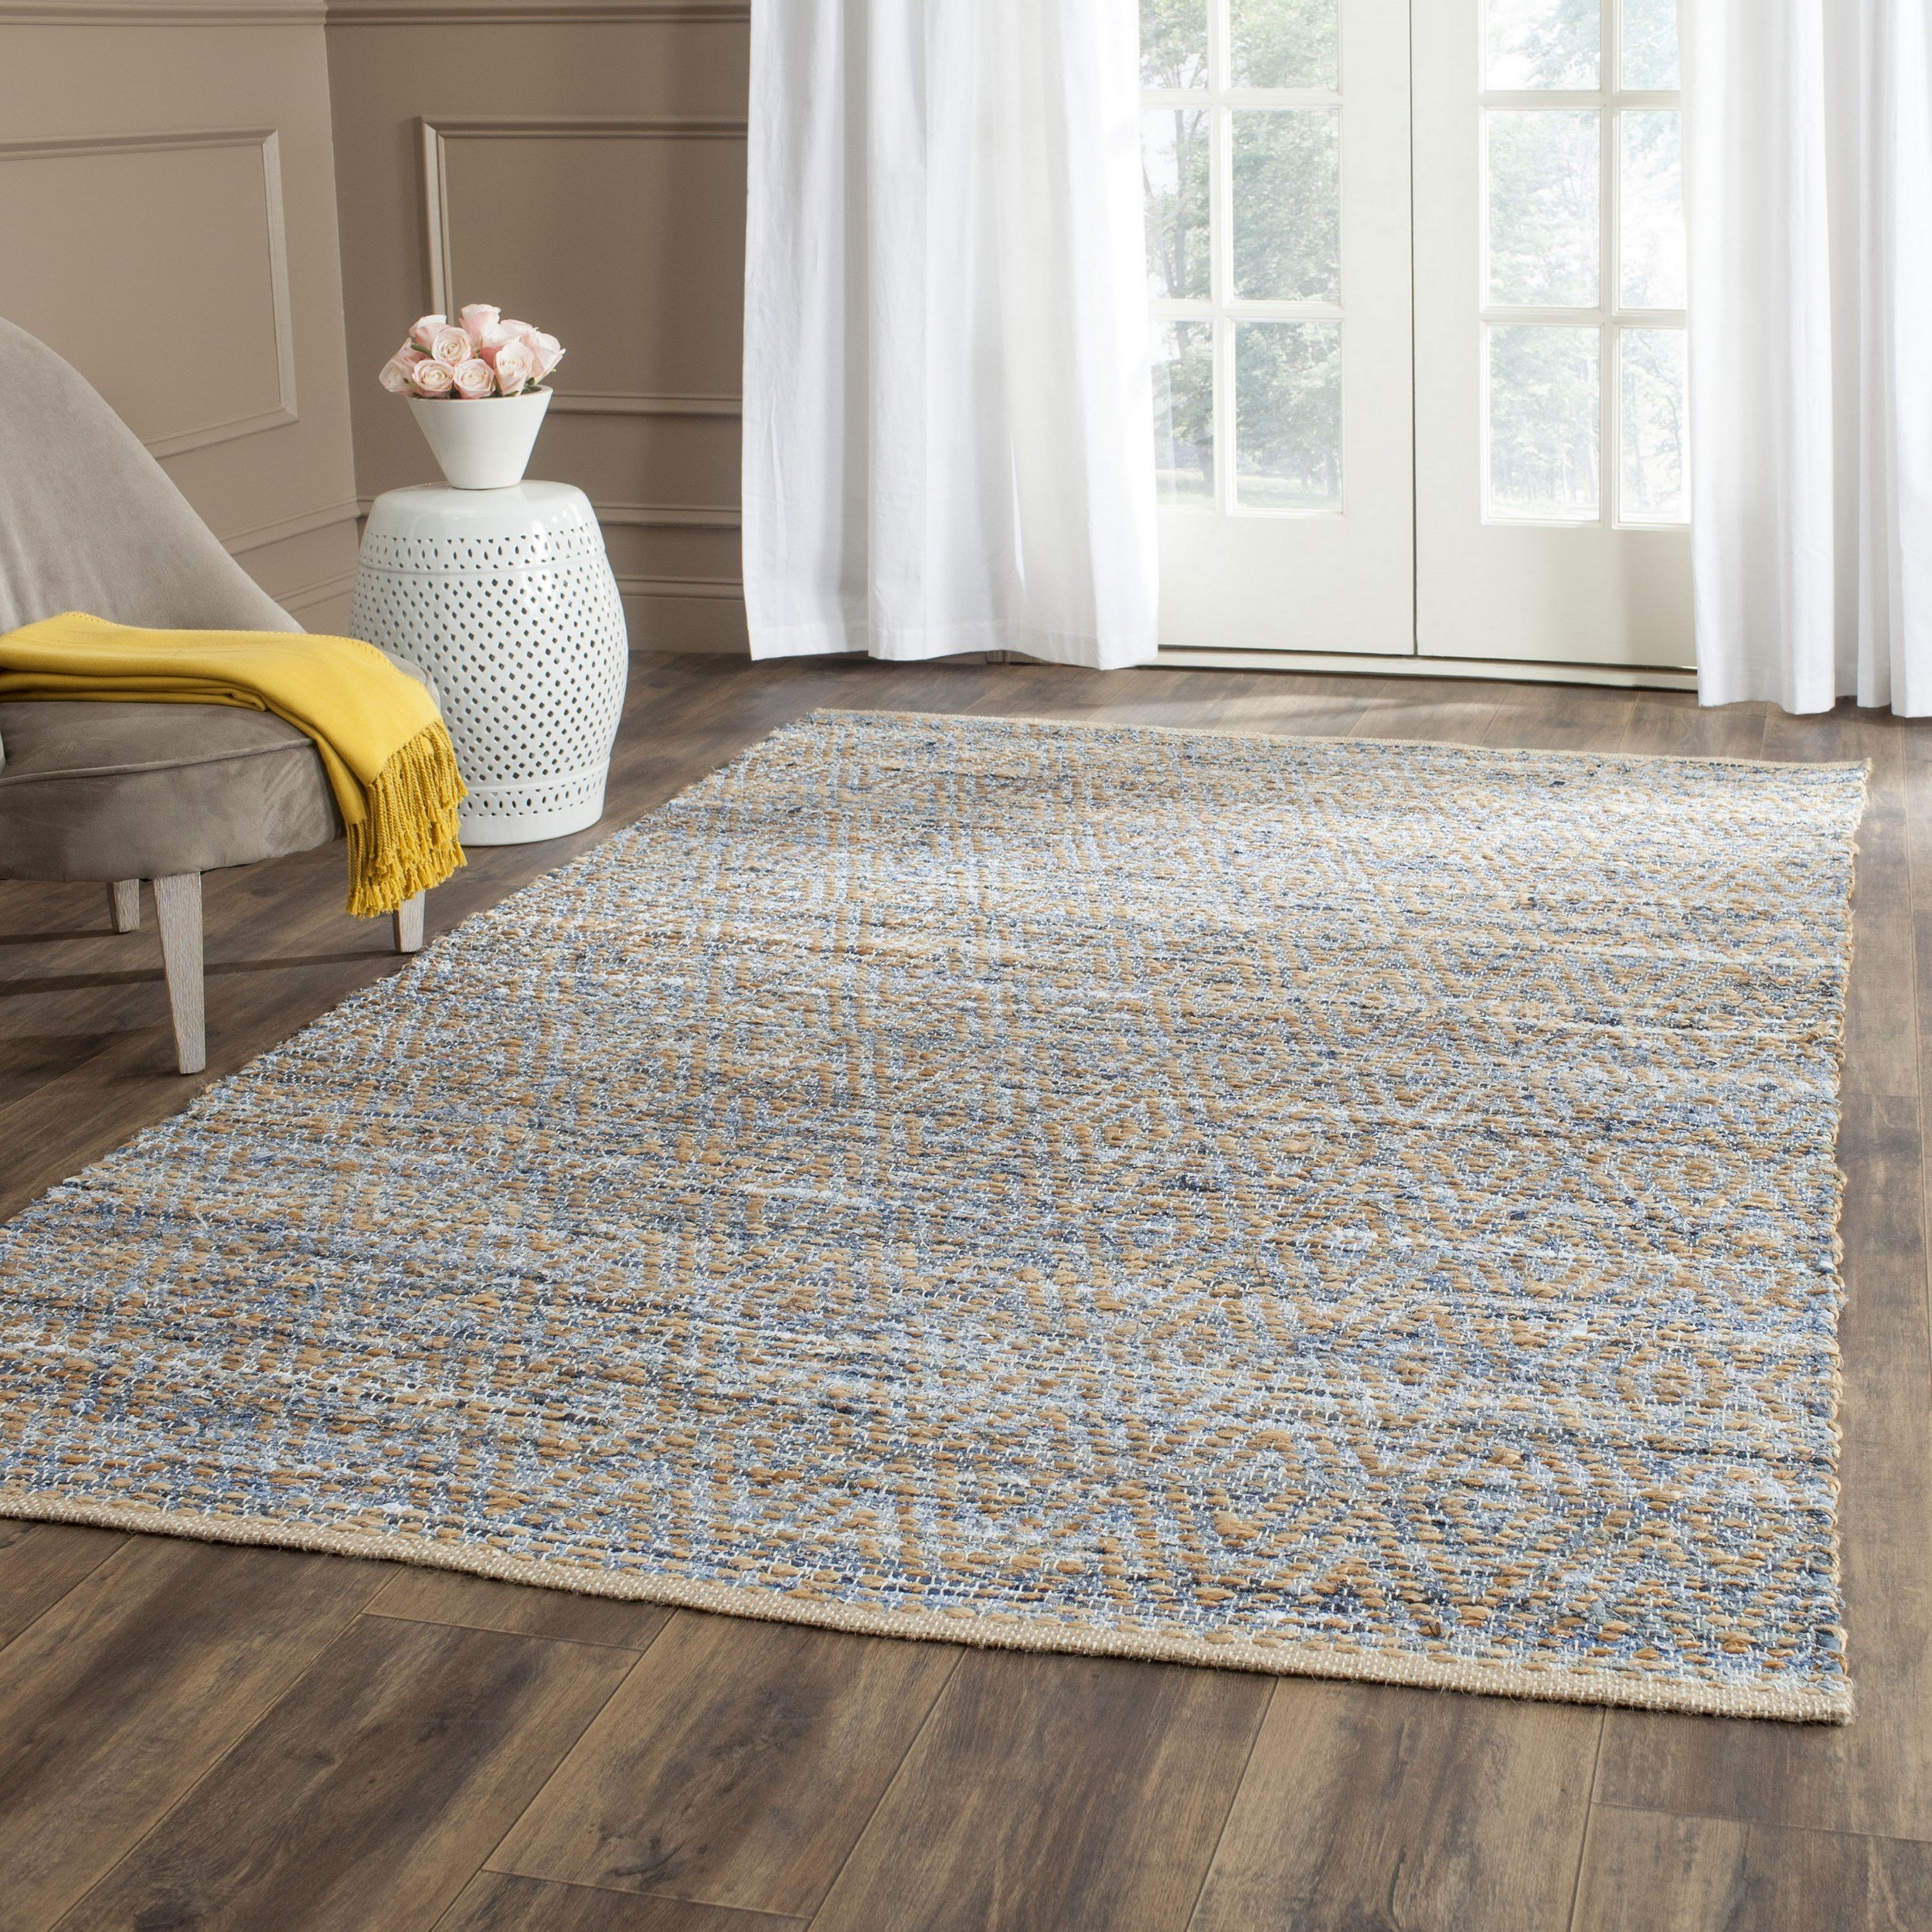 Safavieh Cape Cod Collection CAP350A Hand Woven Flatweave Chevron Natural and Blue Jute Area Rug (8' x 10') by Safavieh